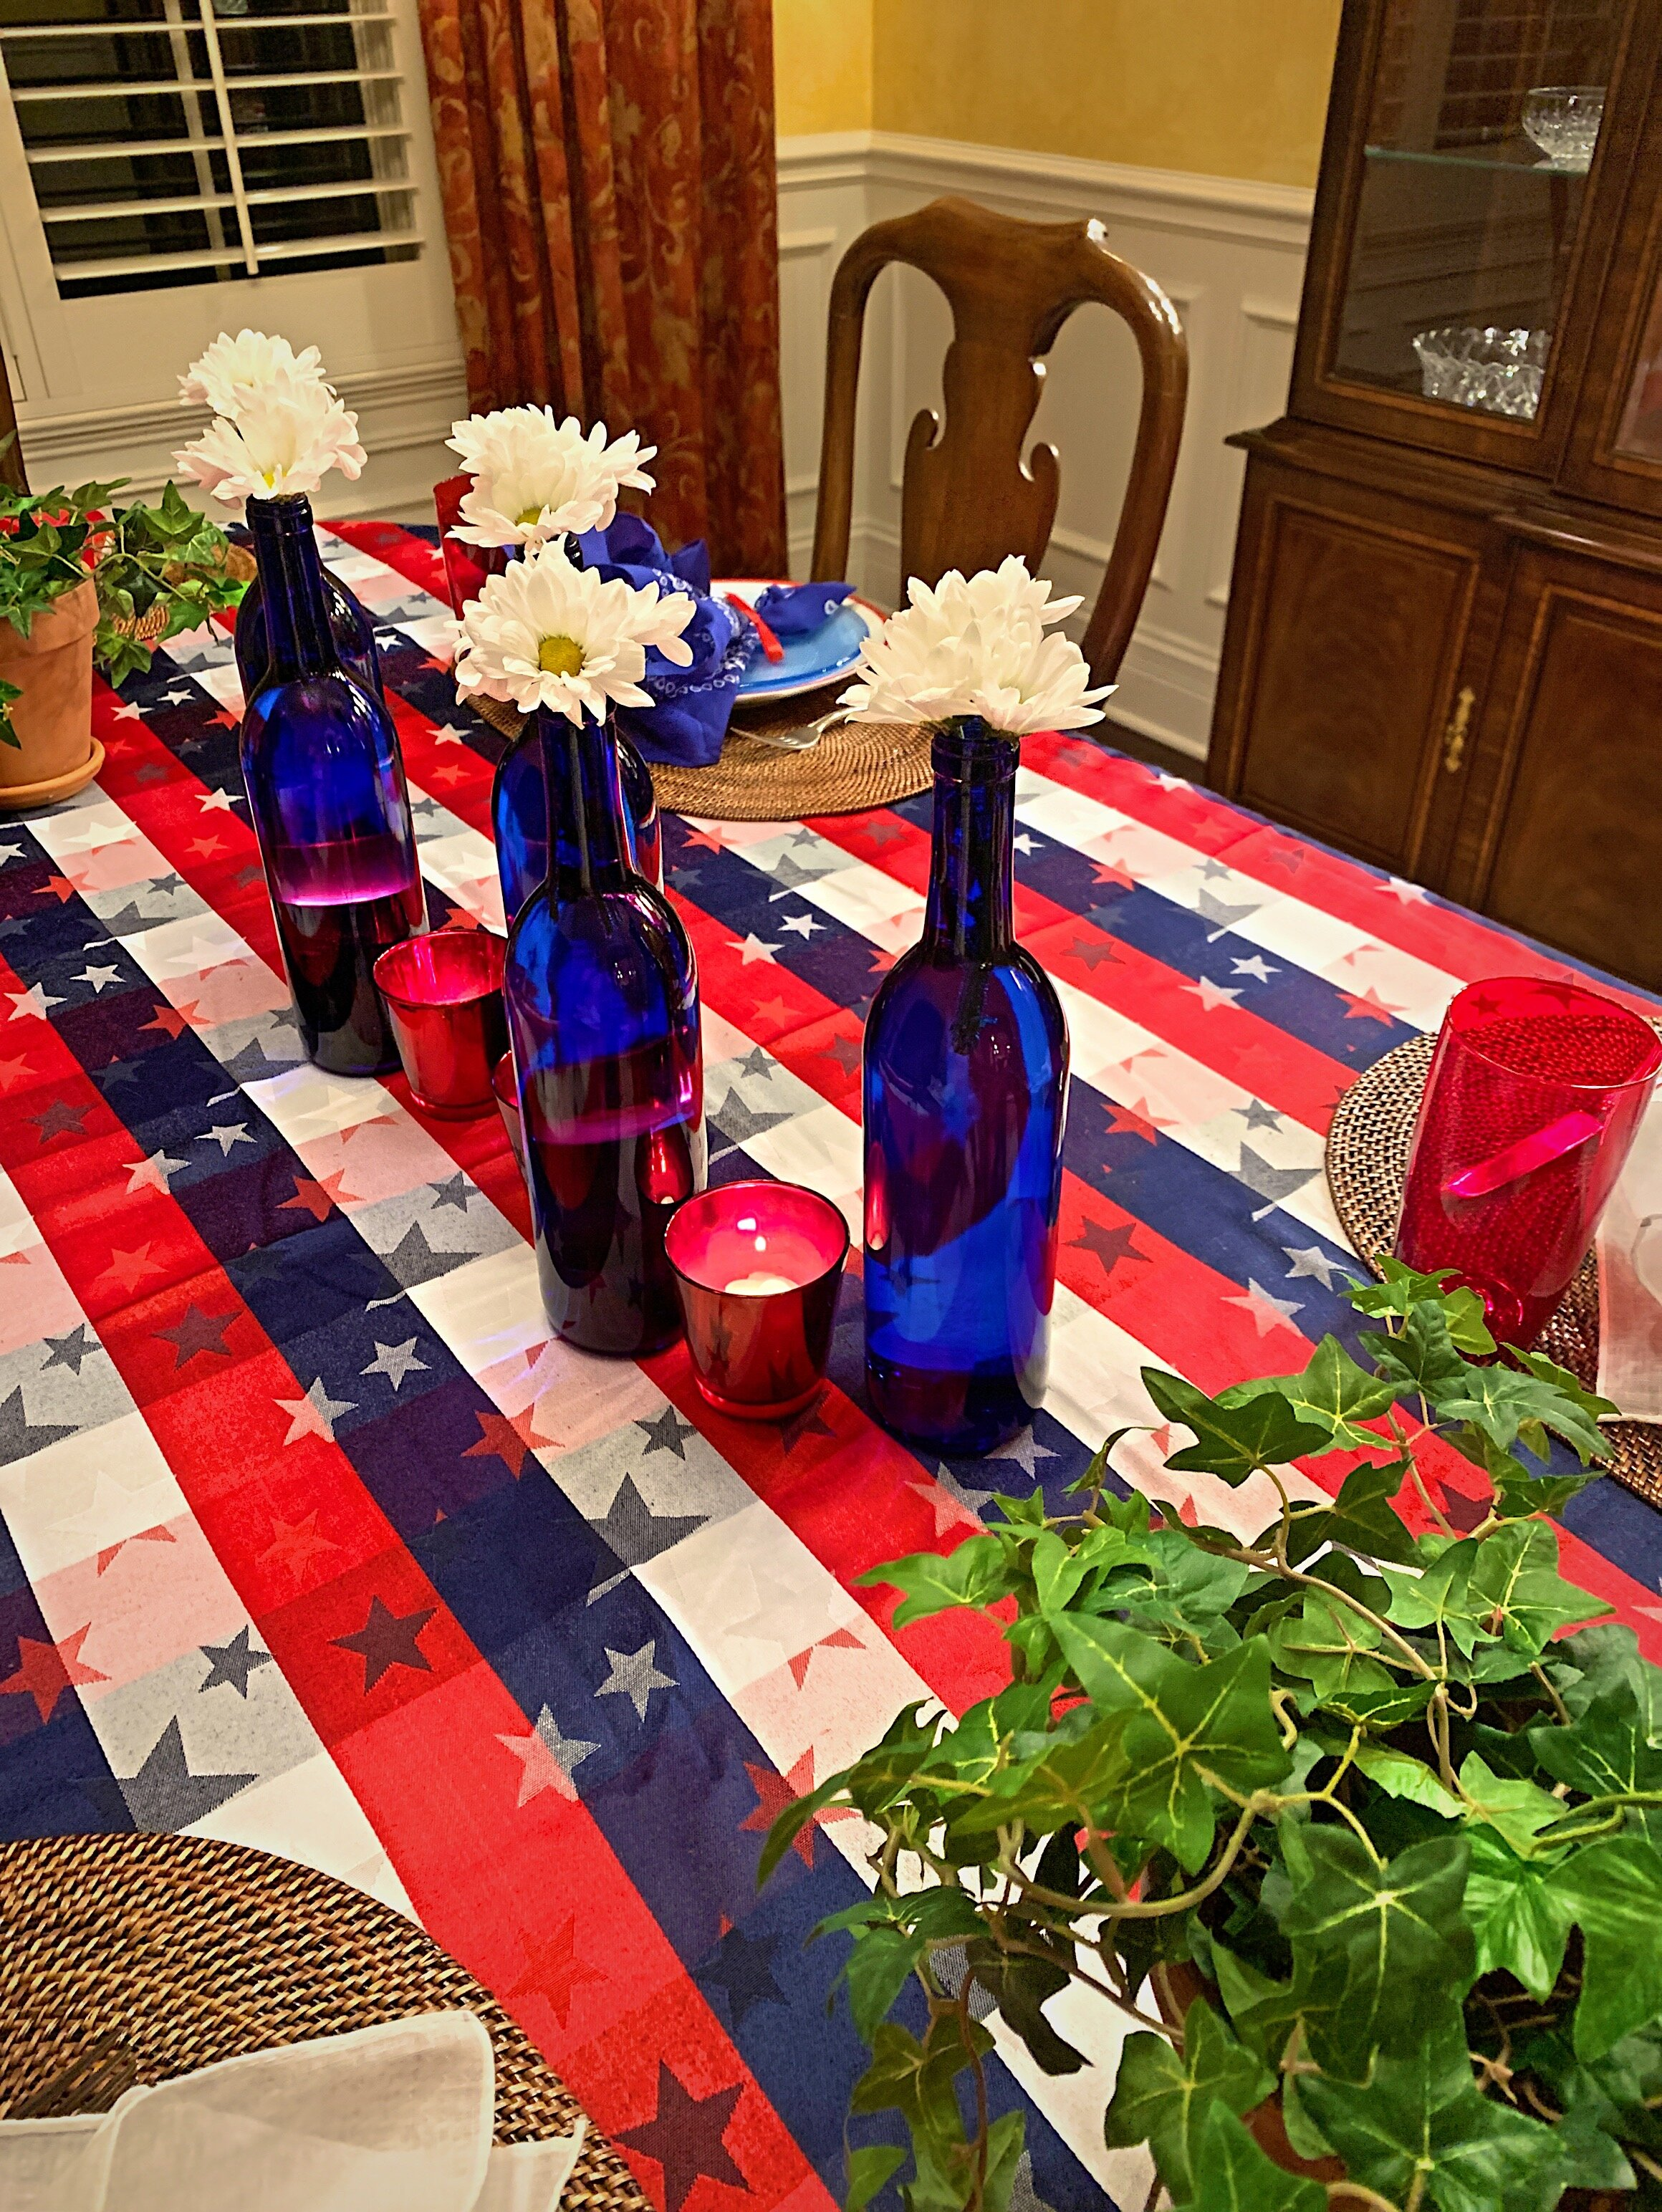 Blue glass bottles featured with white daisies, and red votives for a festive red, whit and blur centerpiece!